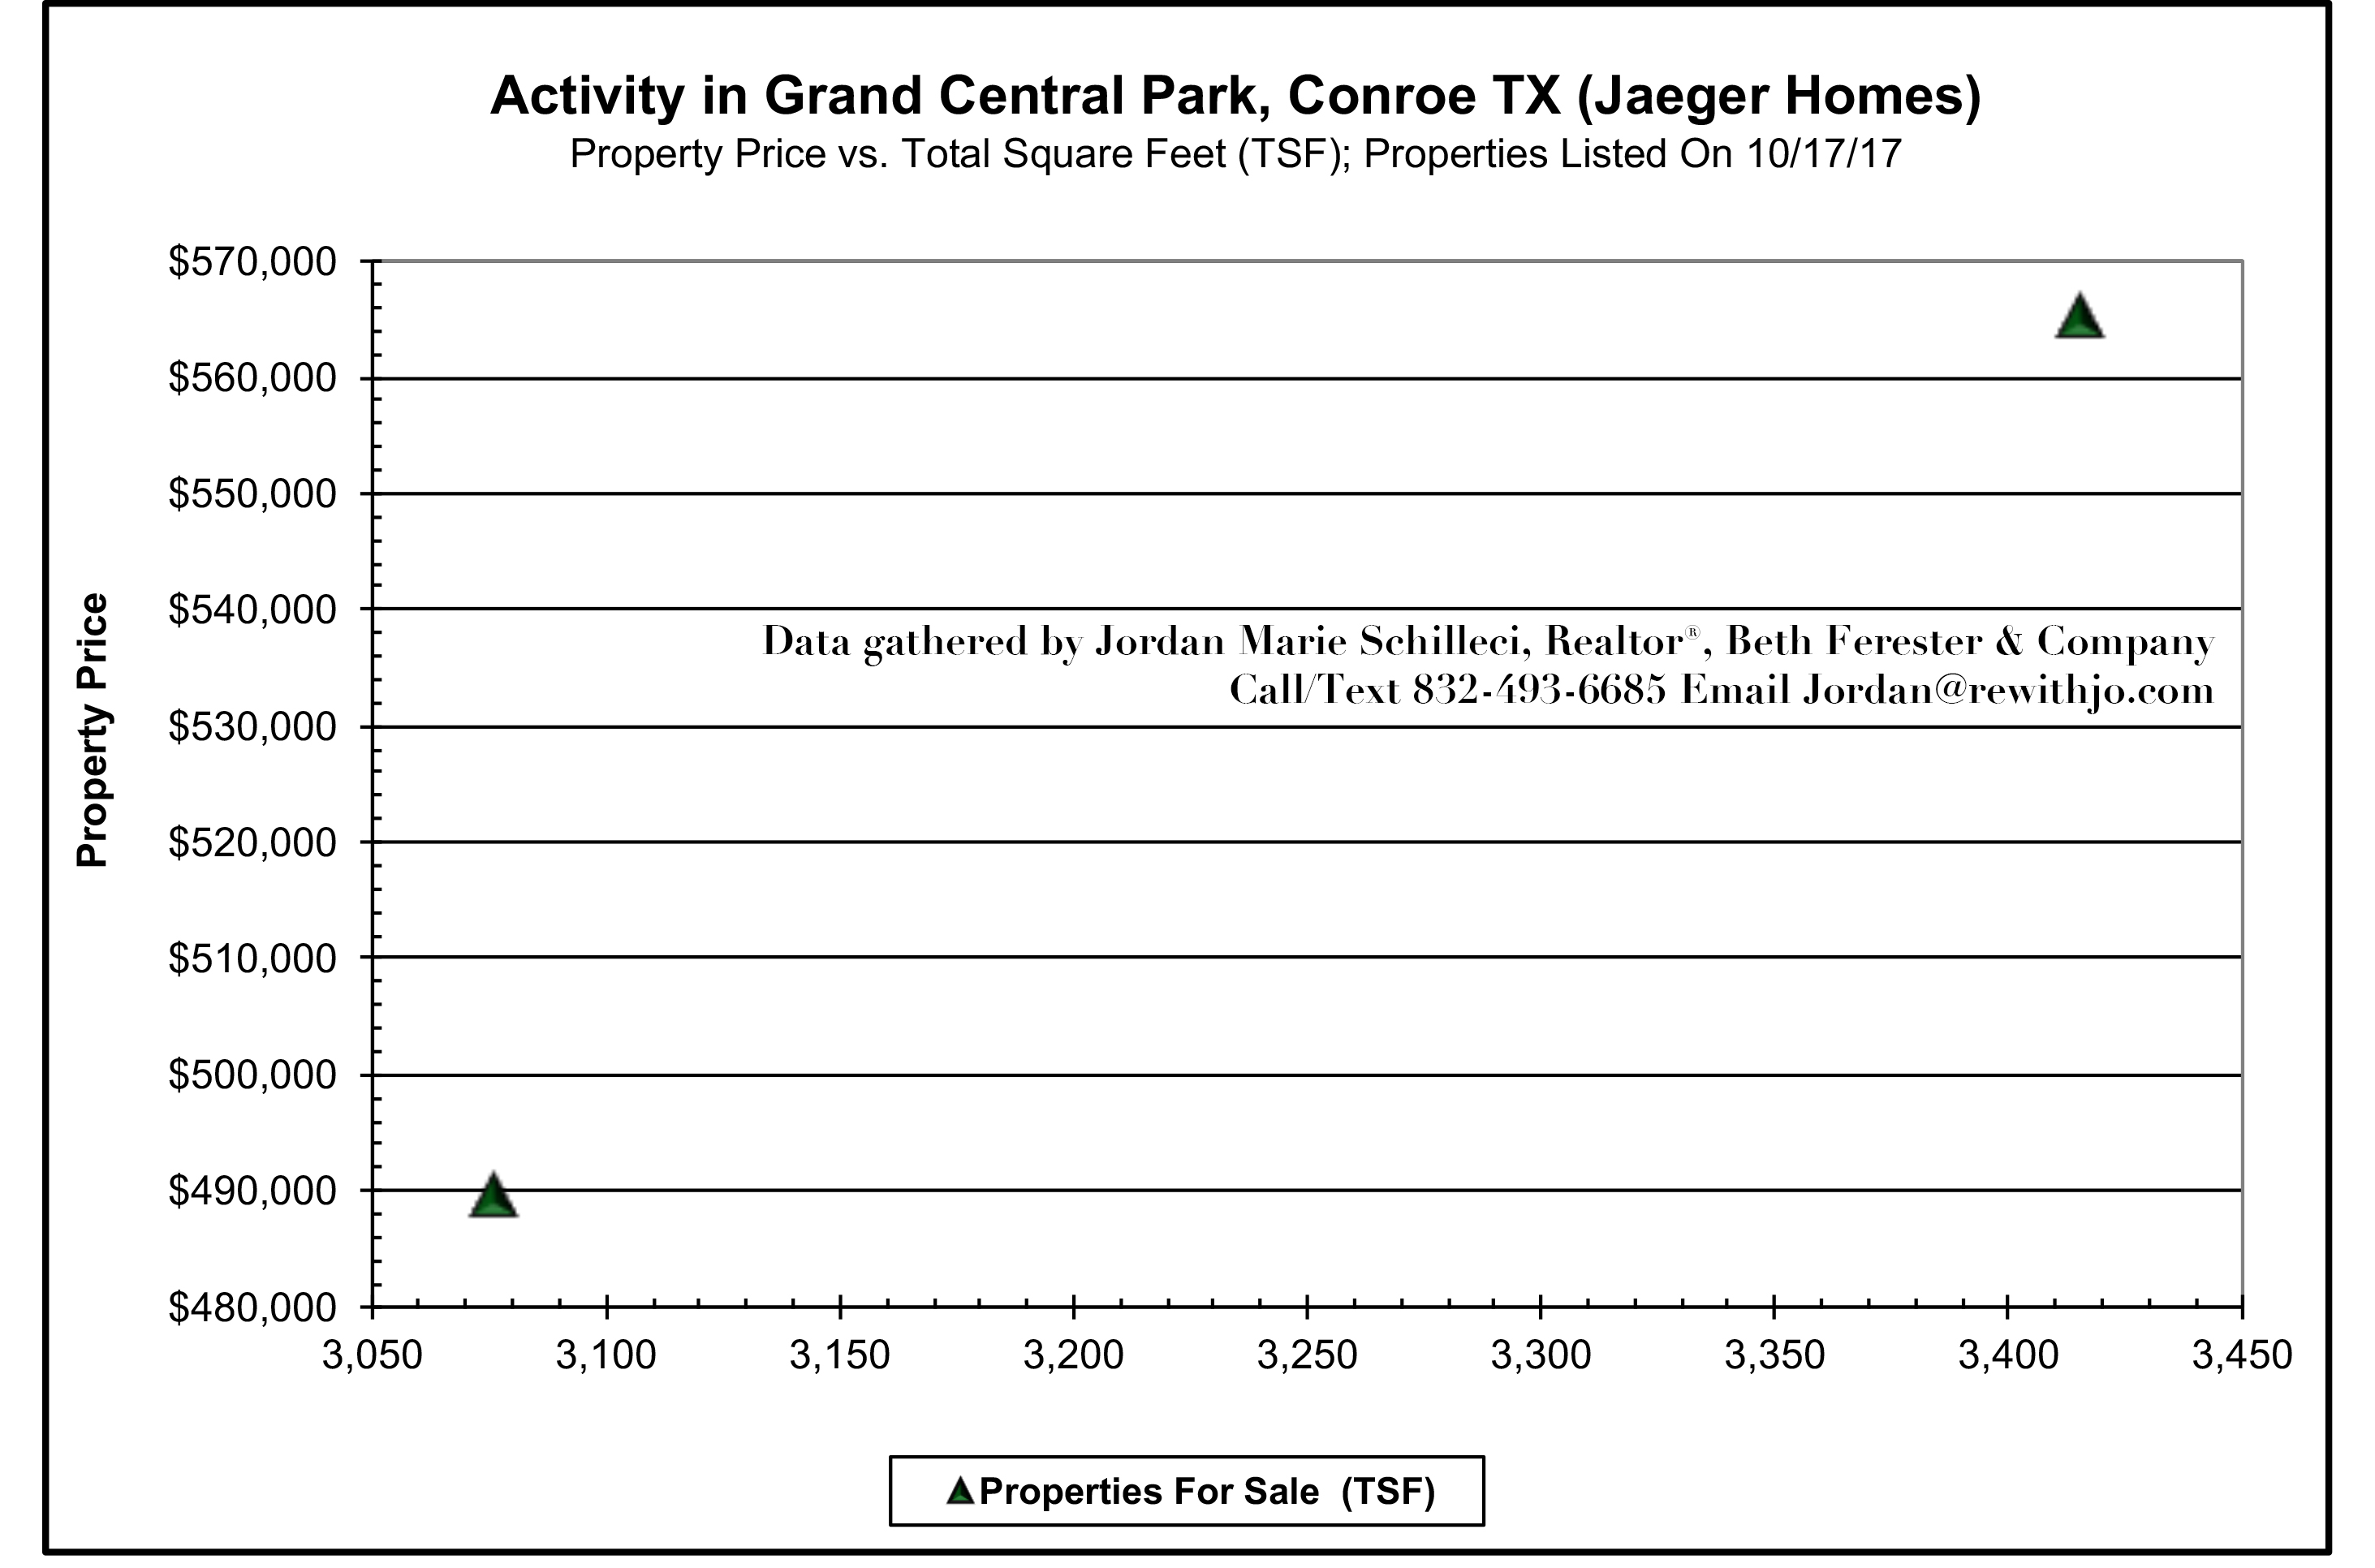 Jaeger Homes For Sale in Grand Central Park Mid-October 2017